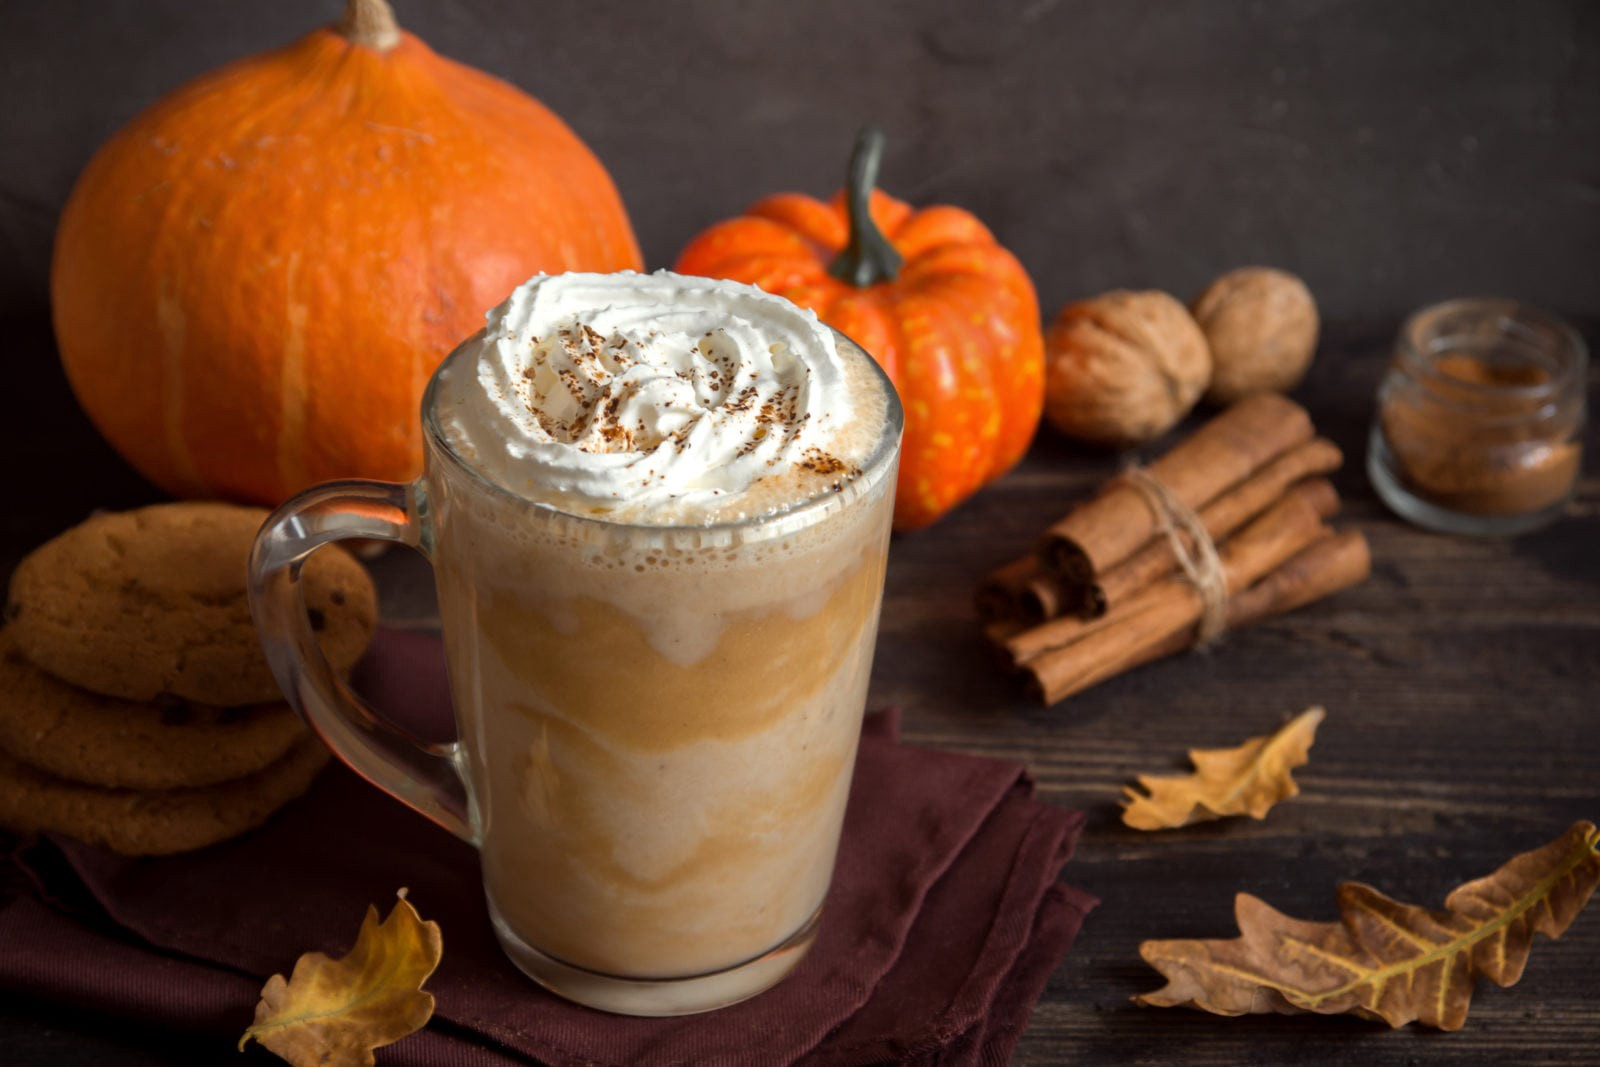 An image of a pumpkin spice latte next to pumpkins, gourds, and cinnamon sticks